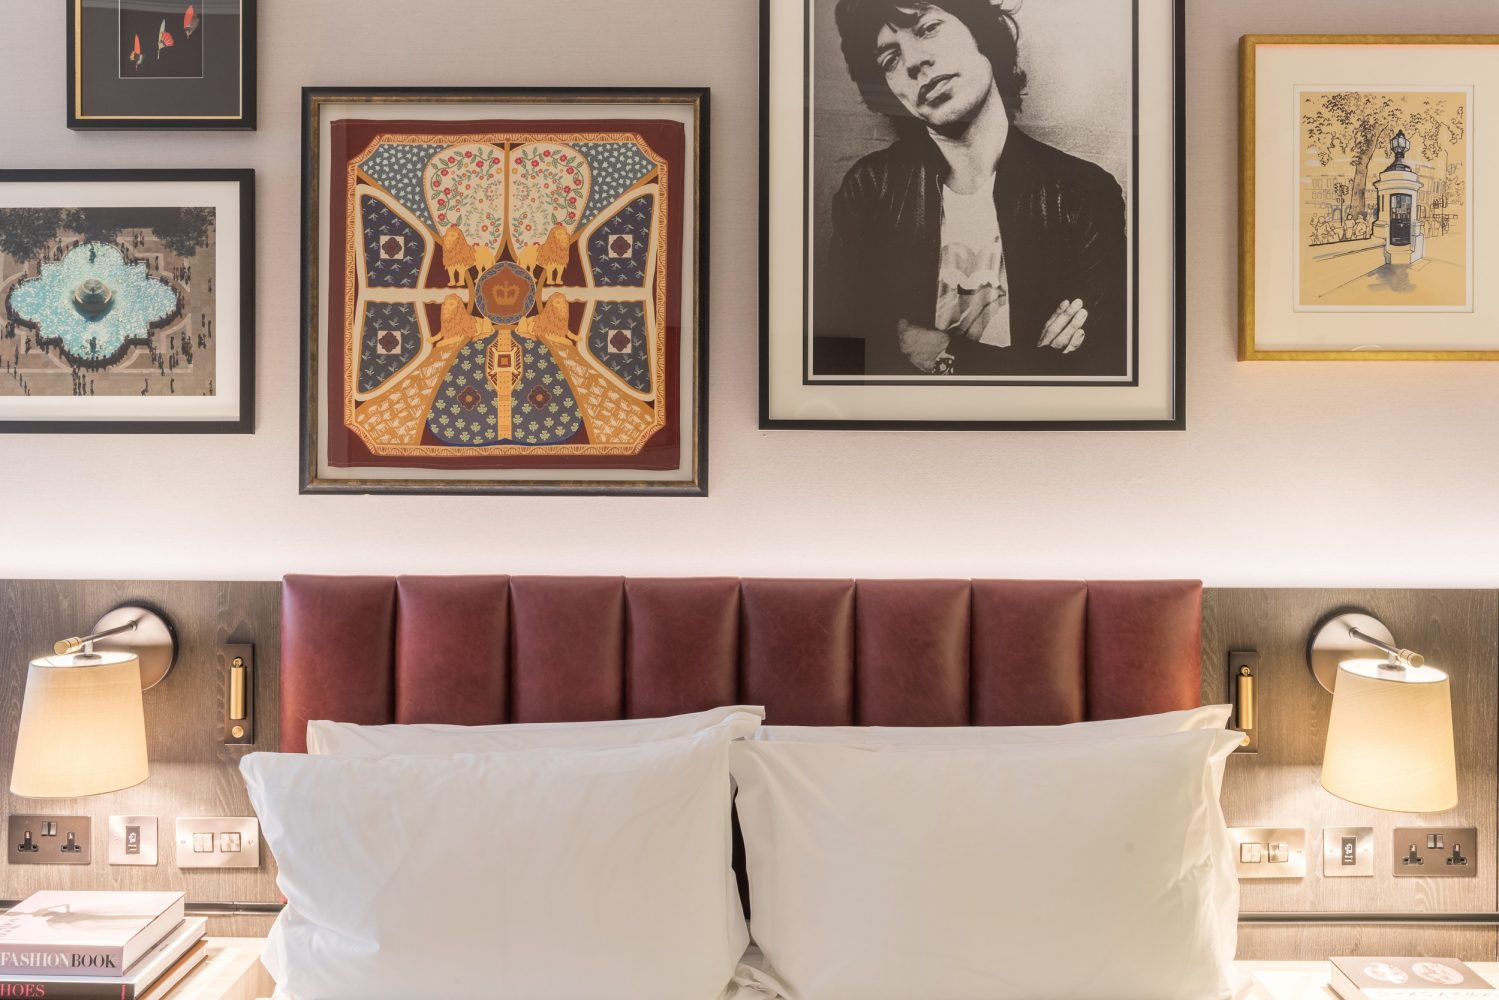 The Trafalgar St. James - Mick Jagger